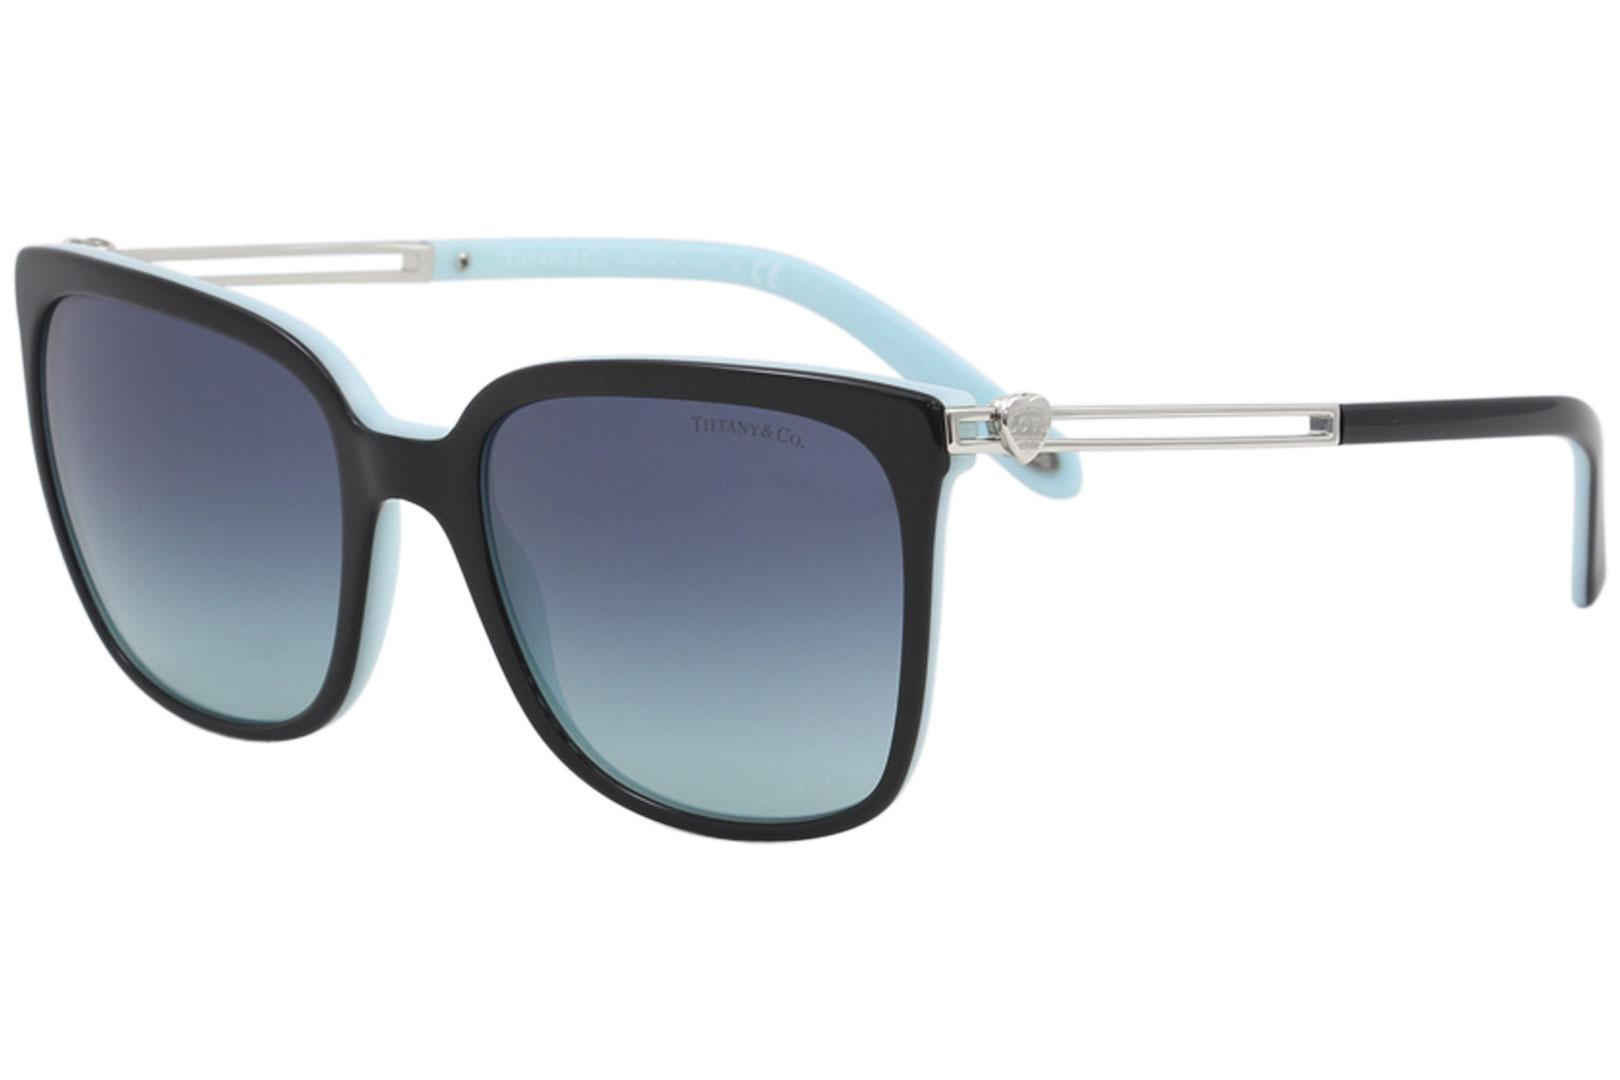 7608d214d31e Tiffany & Co Women's TF4138 TF/4138 Fashion Phantos Sunglasses